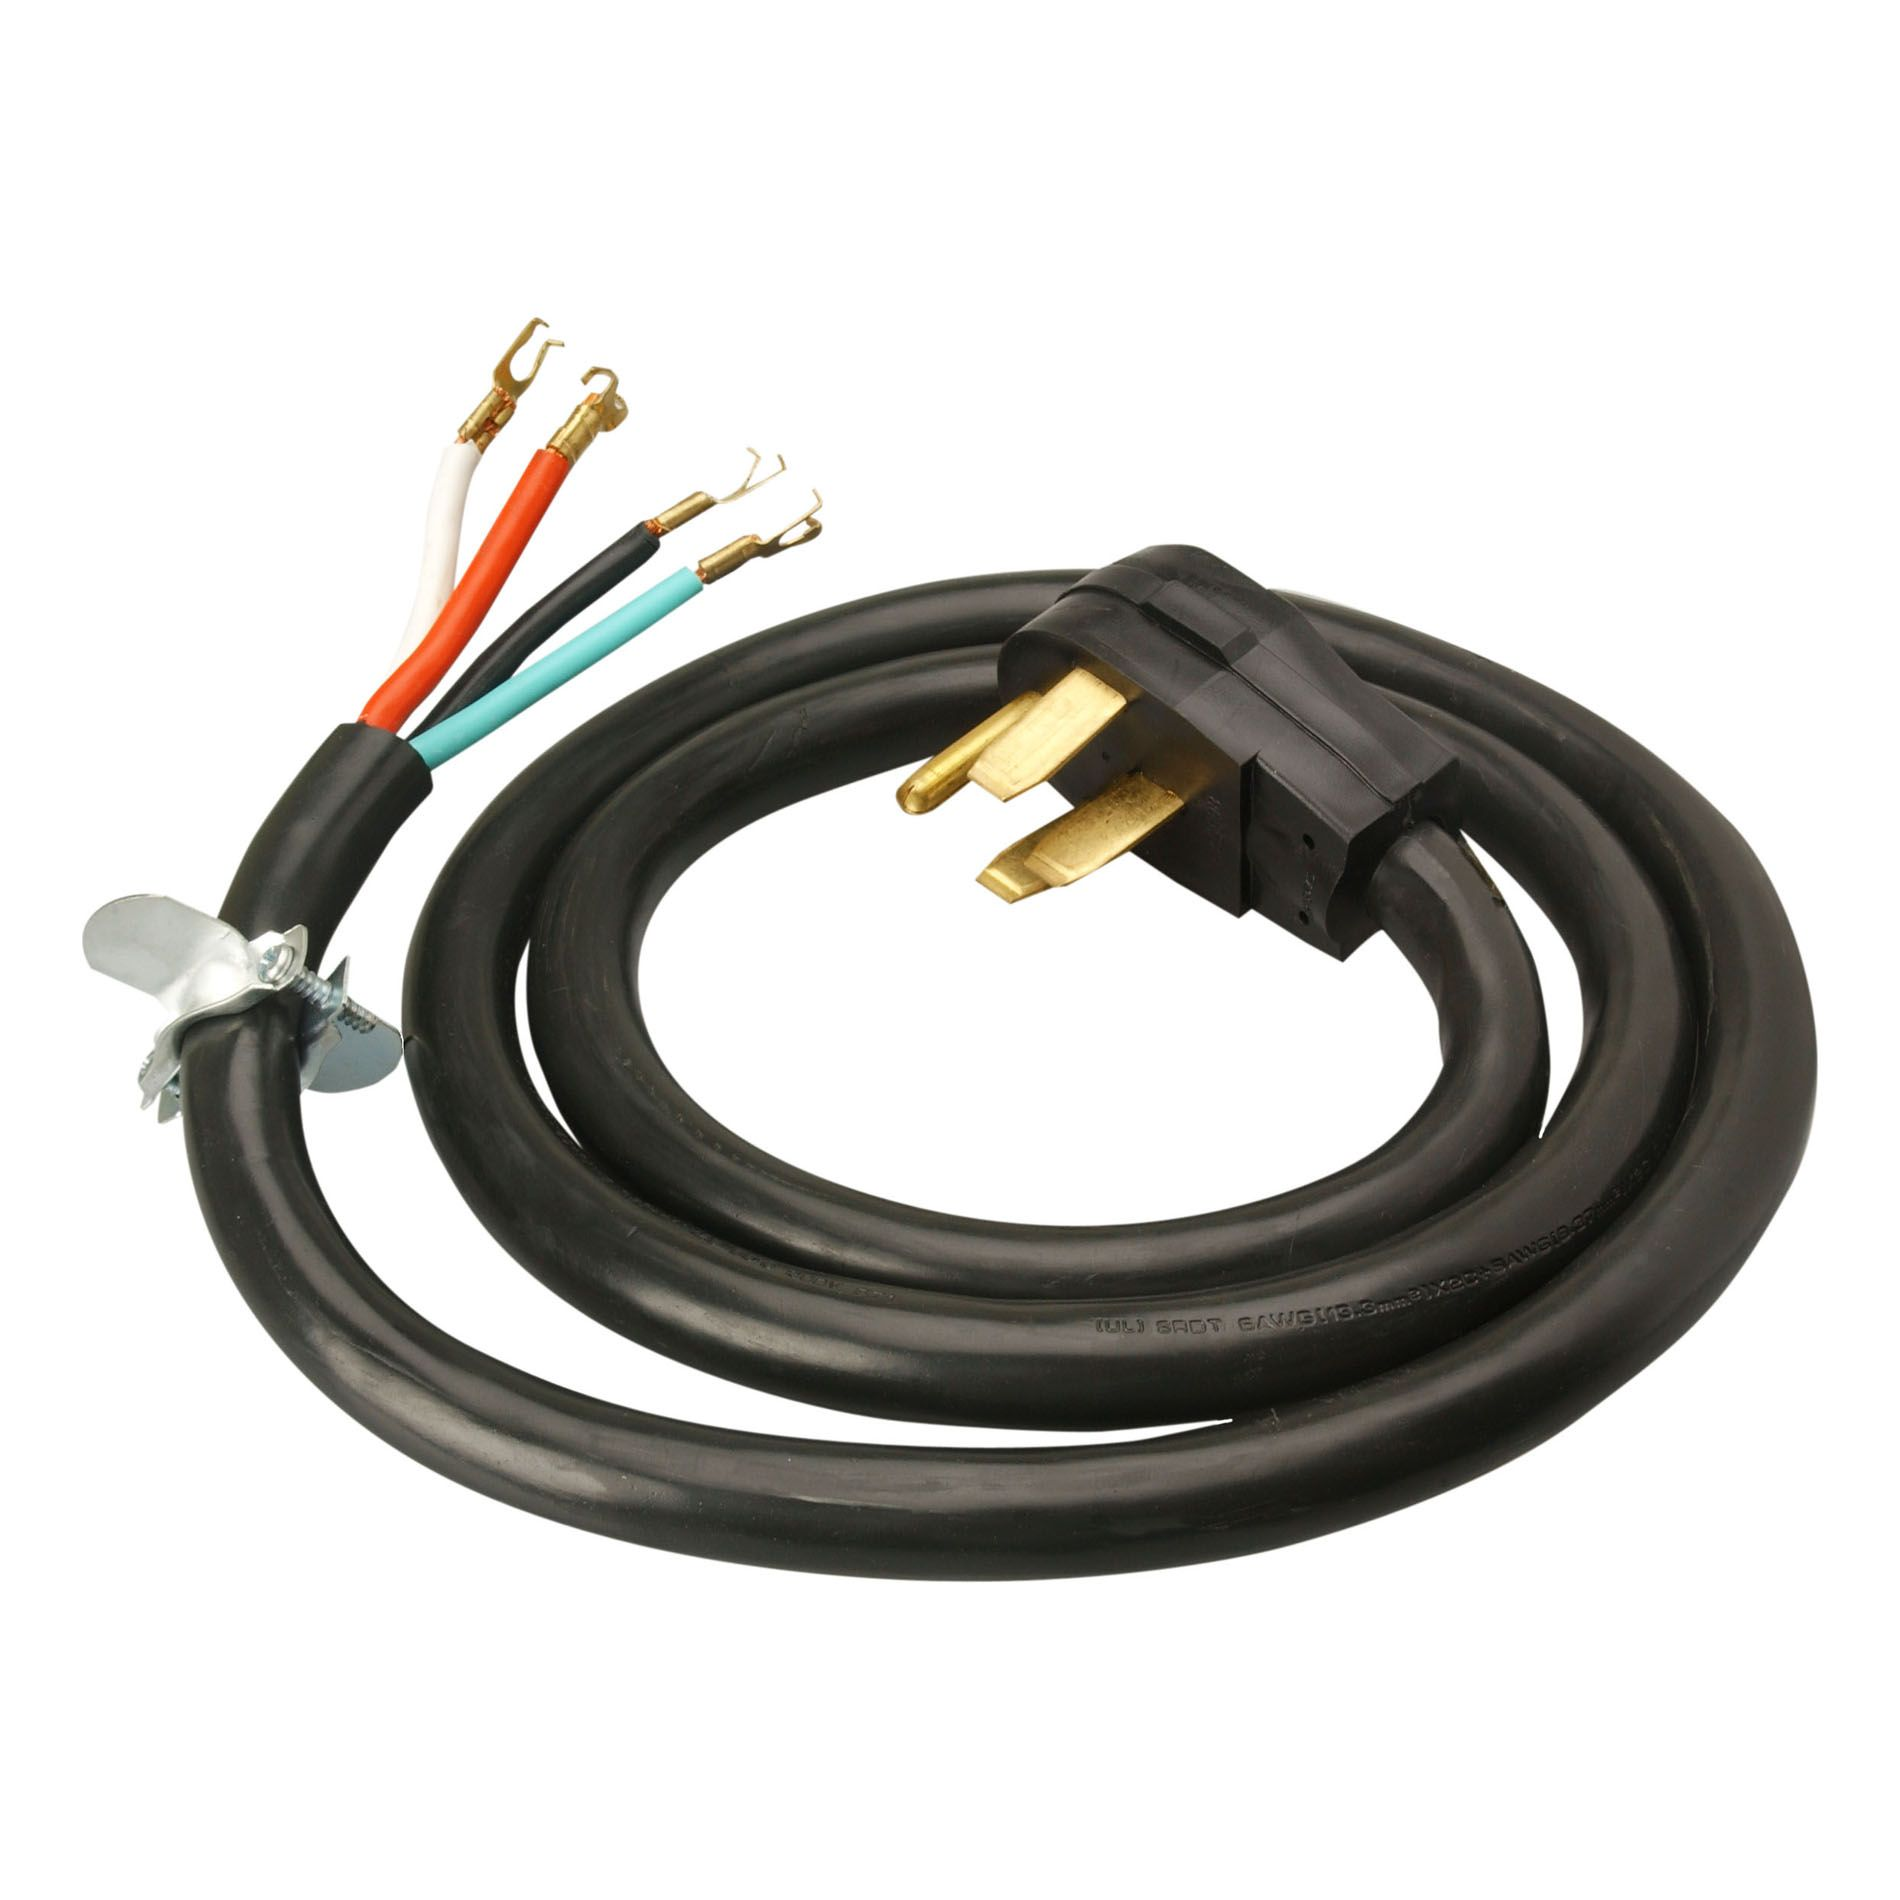 electricord 49626 4 wire 6 ft electric range cord sears outlet wire 6 ft electric range cord description 50 amp 4 wire 6 foot range [ 1900 x 1900 Pixel ]